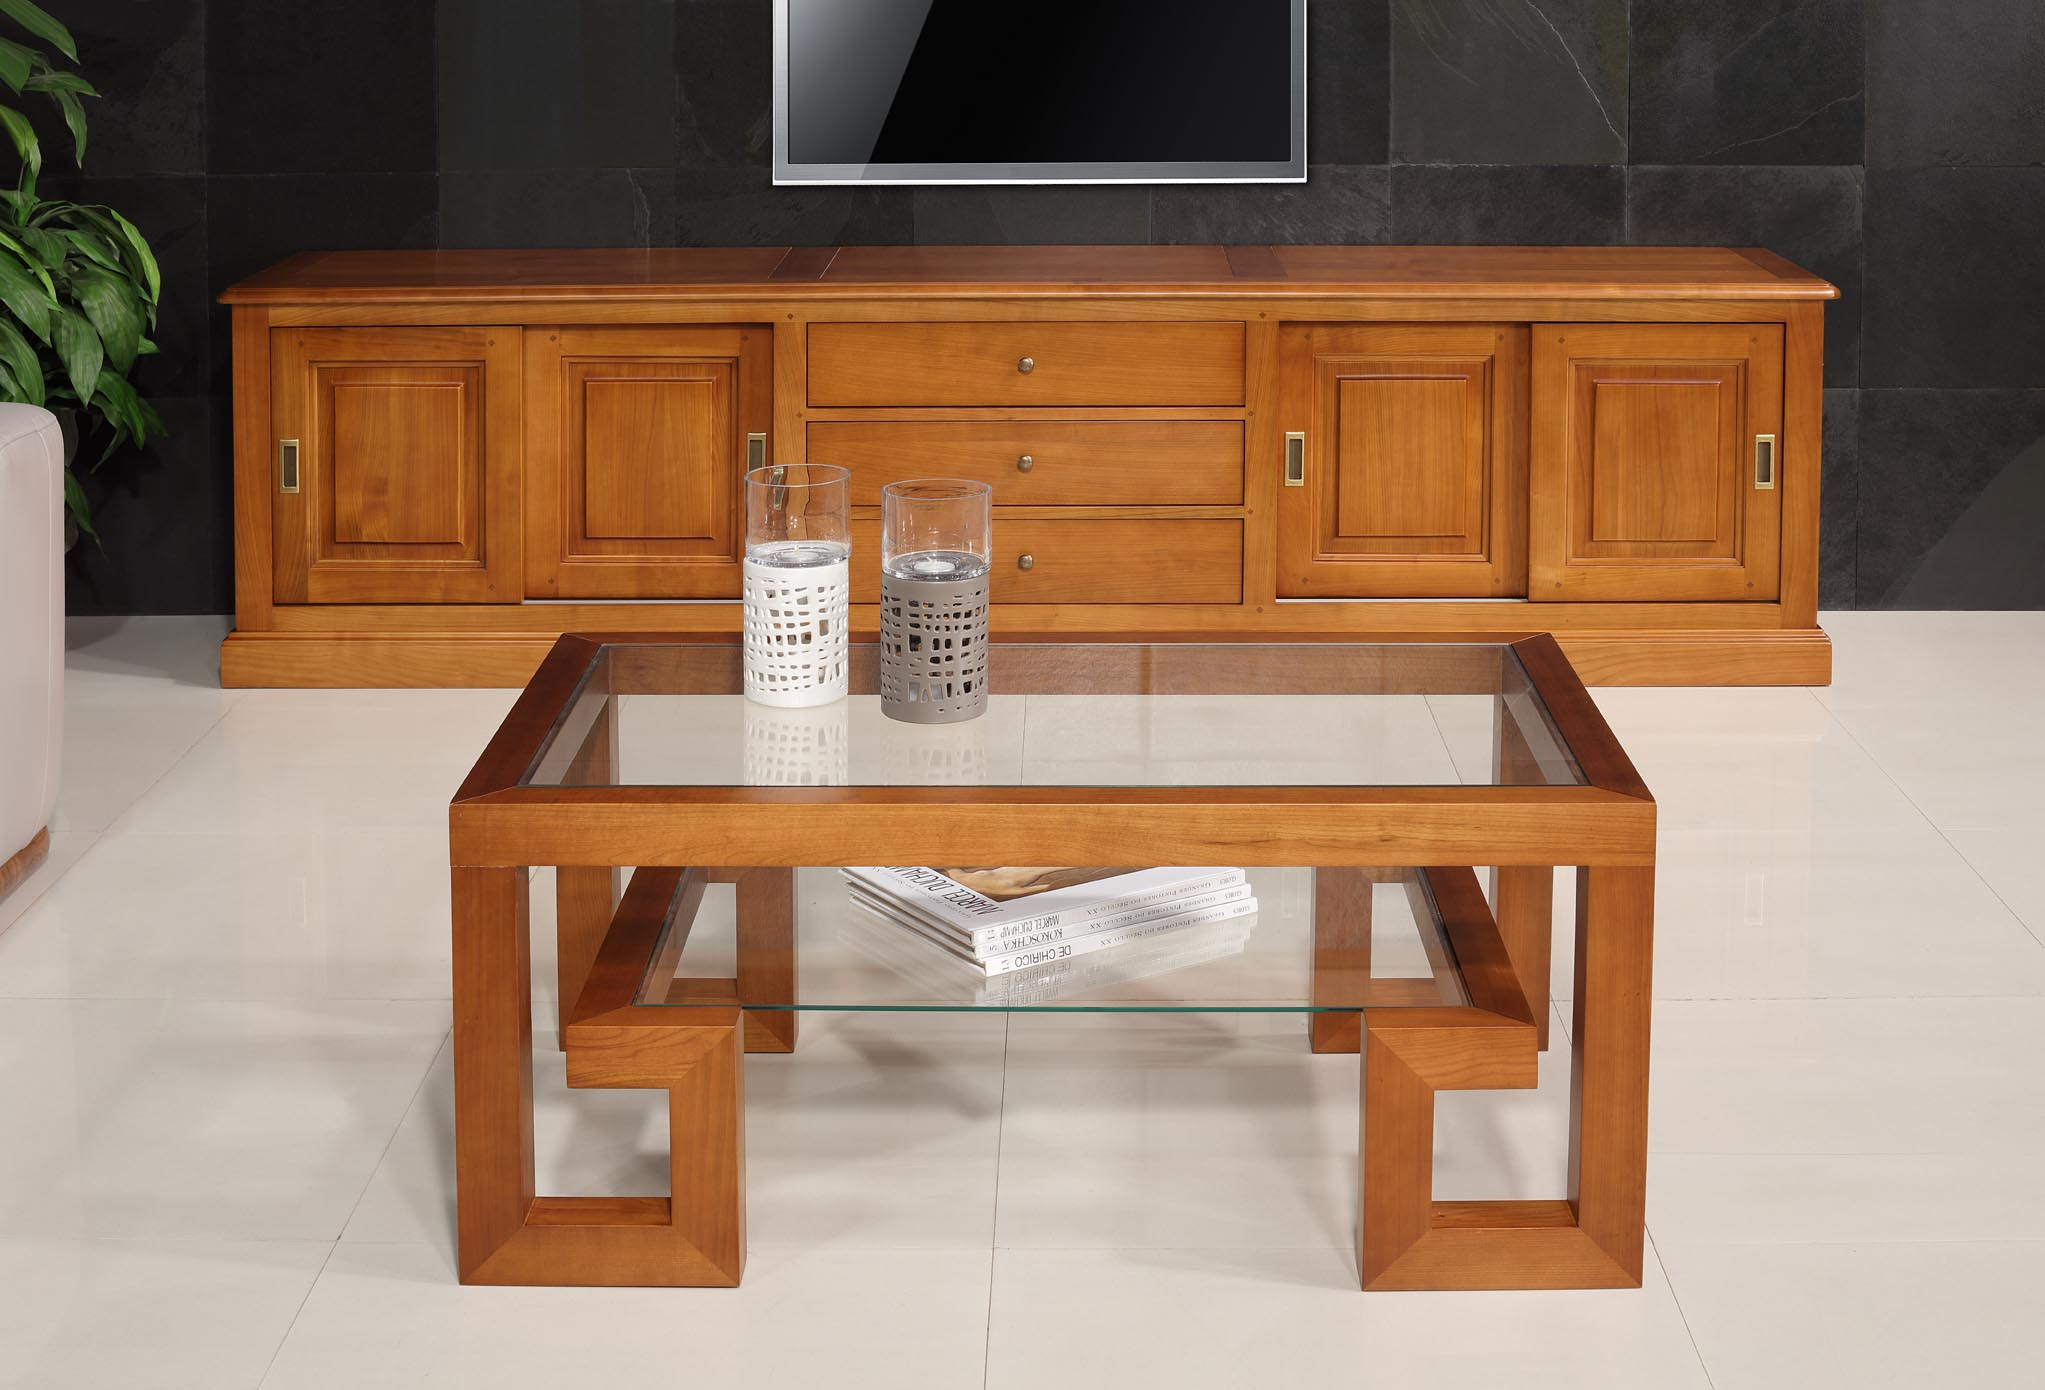 Table Basse Rectangulaire Alice De Ligne Contemporaine En Merisier Massif Et Verre 105x60 - Table Basse Contemporaine